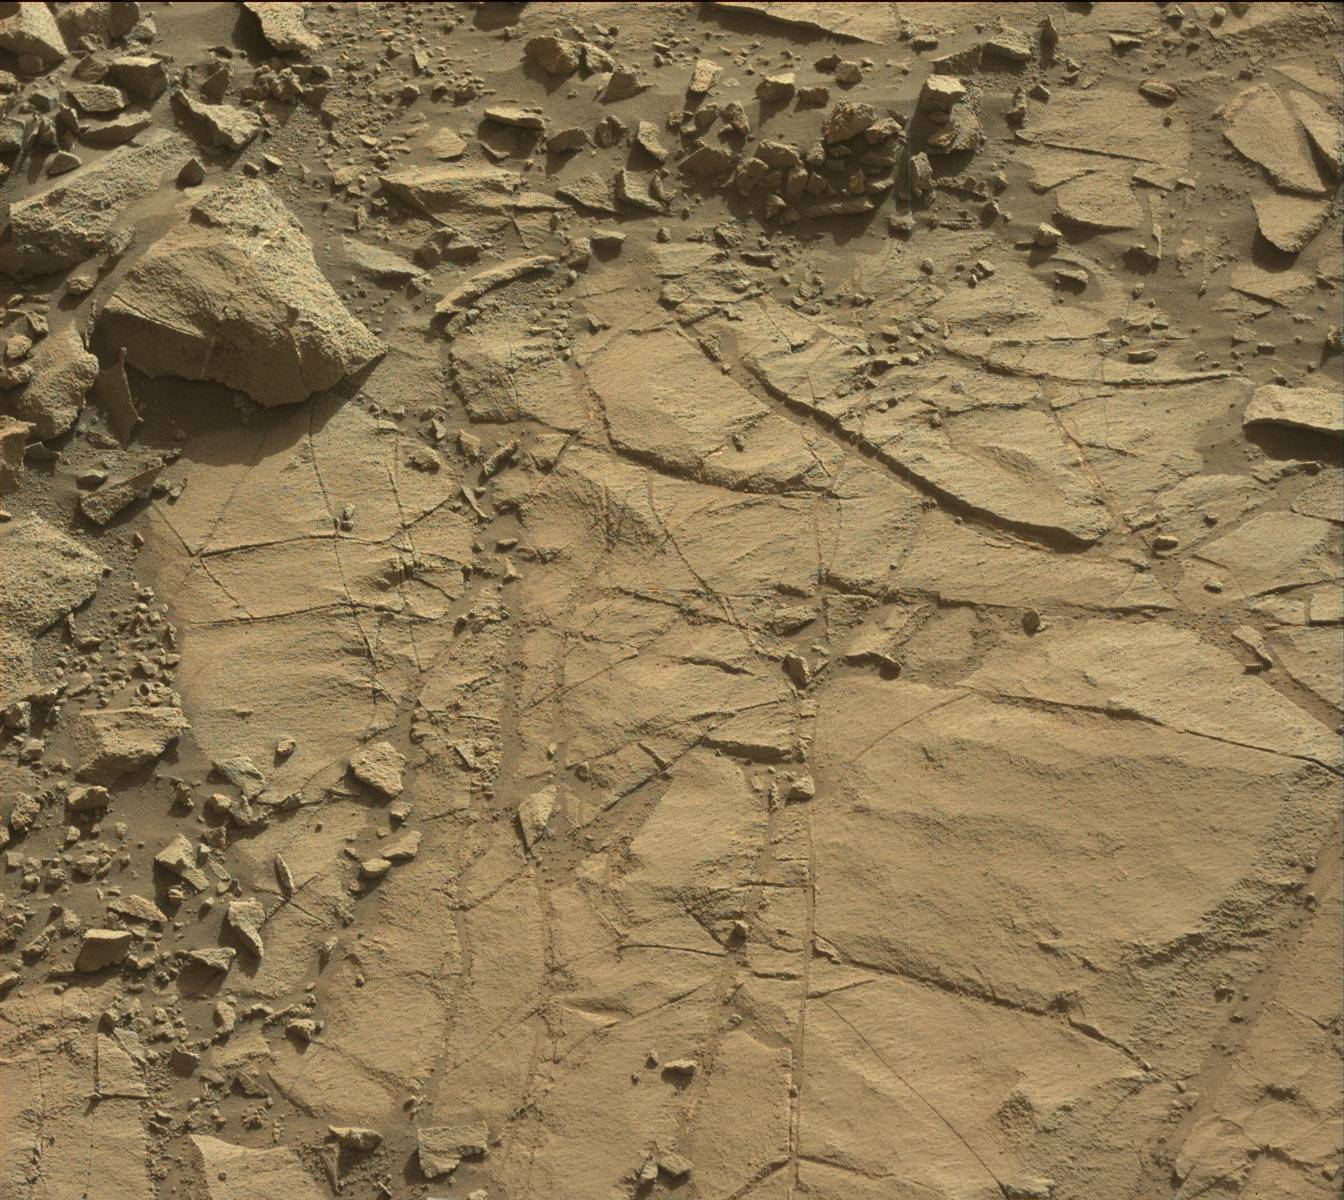 Nasa's Mars rover Curiosity acquired this image using its Mast Camera (Mastcam) on Sol 1269